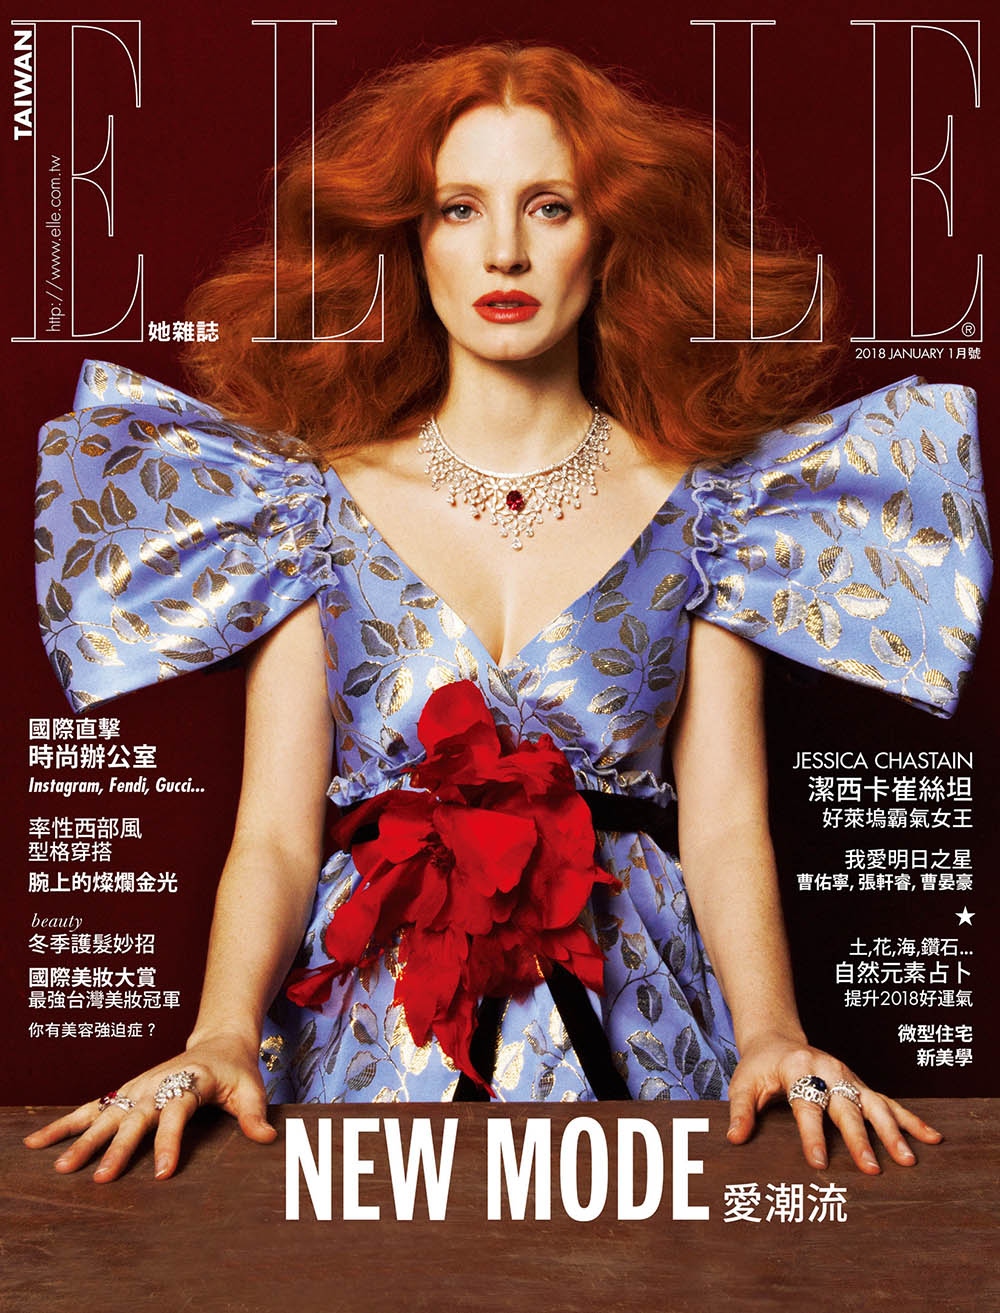 Jessica Chastain covers Elle Taiwan January 2018 by Zhong Lin